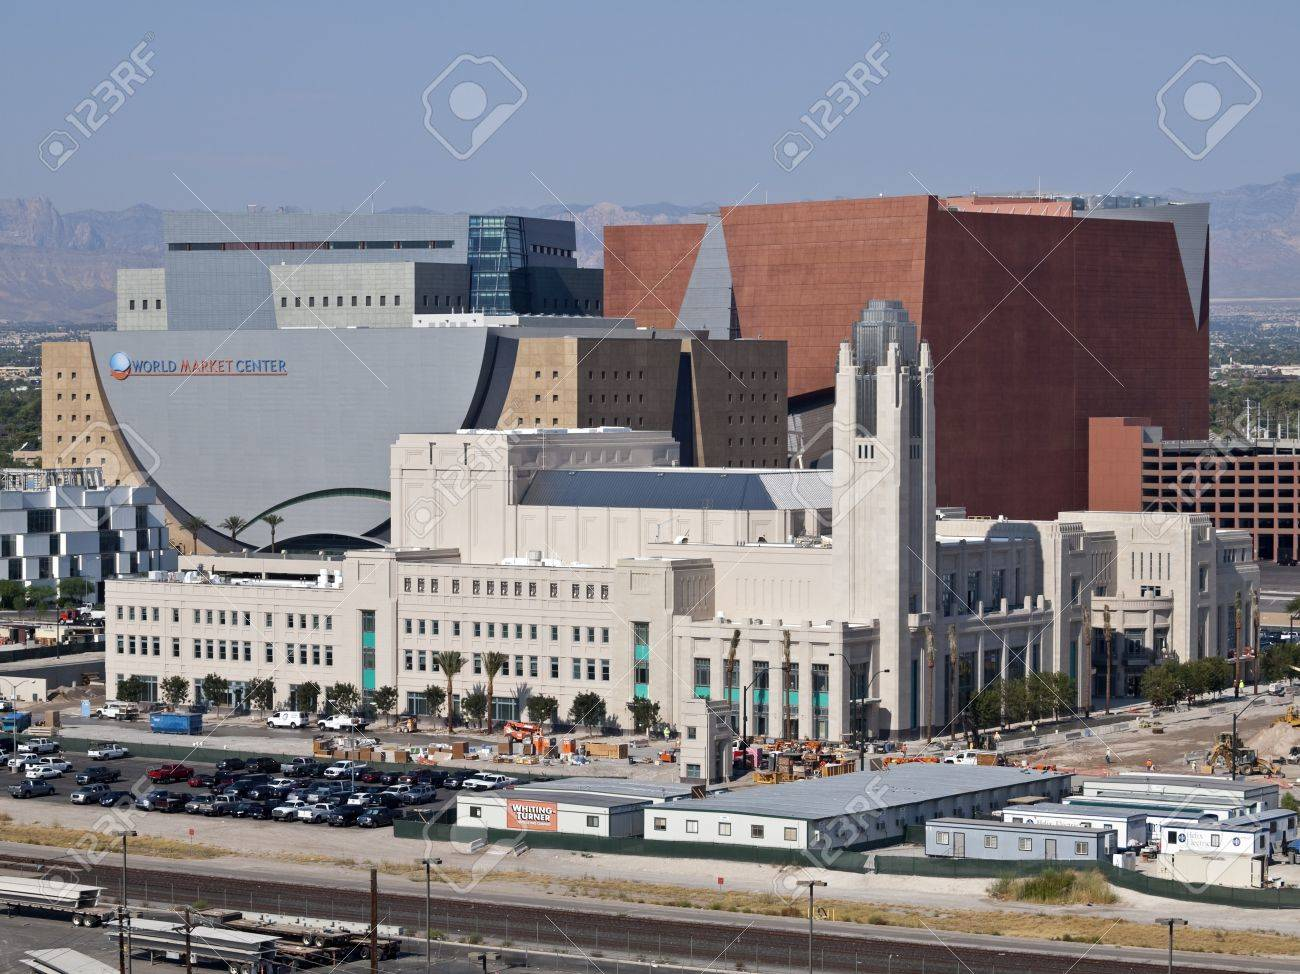 LAS VEGAS, NEVADA - Sept 9:  Construction nears completion on the 470 million dollar Smith Center for the Performing Arts.  The 2050 seat theater is set to open on March 10, 2012, in Las Vegas Nevada on September 9, 2011. Stock Photo - 10592745